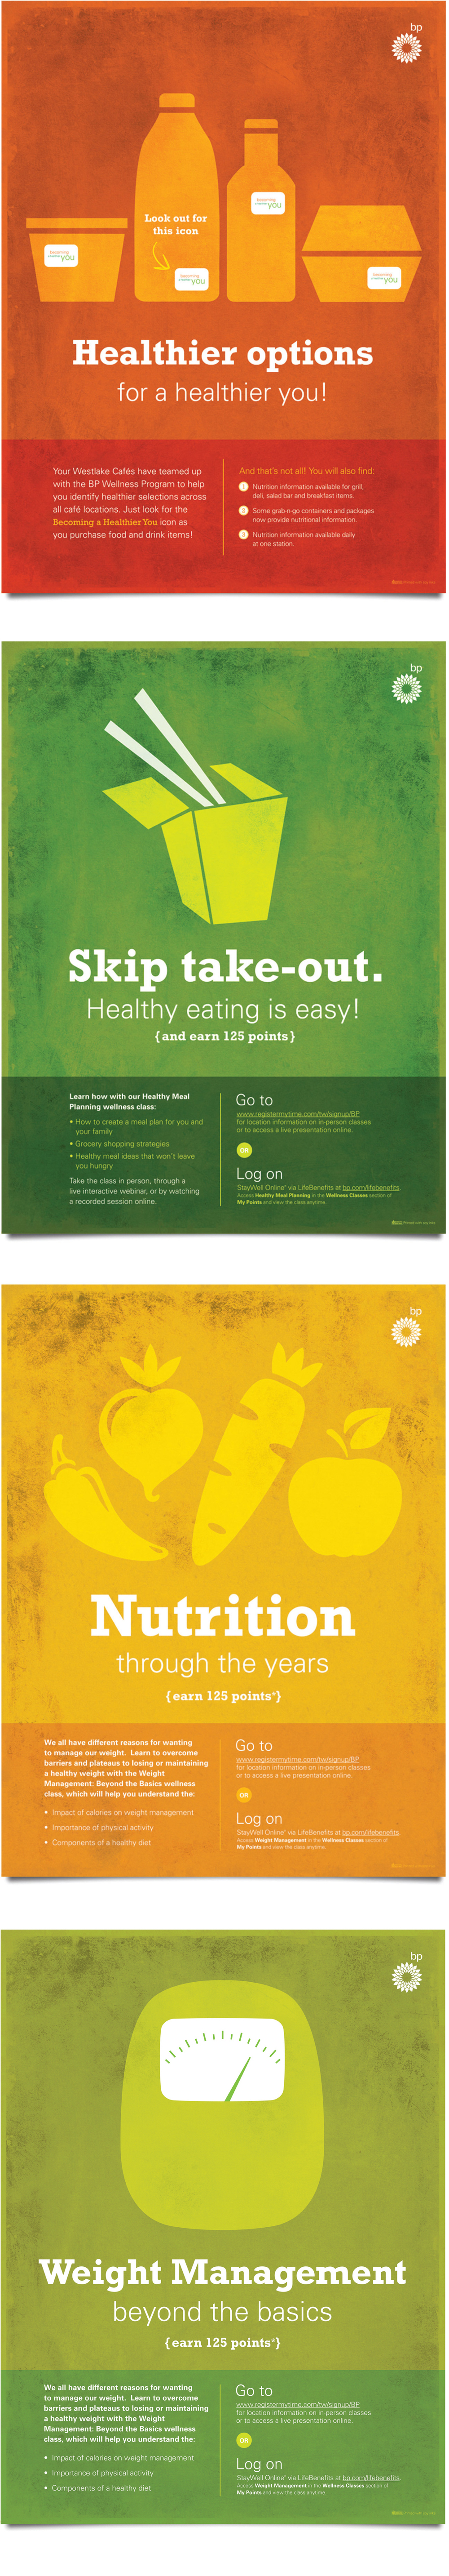 BP healthier options posters